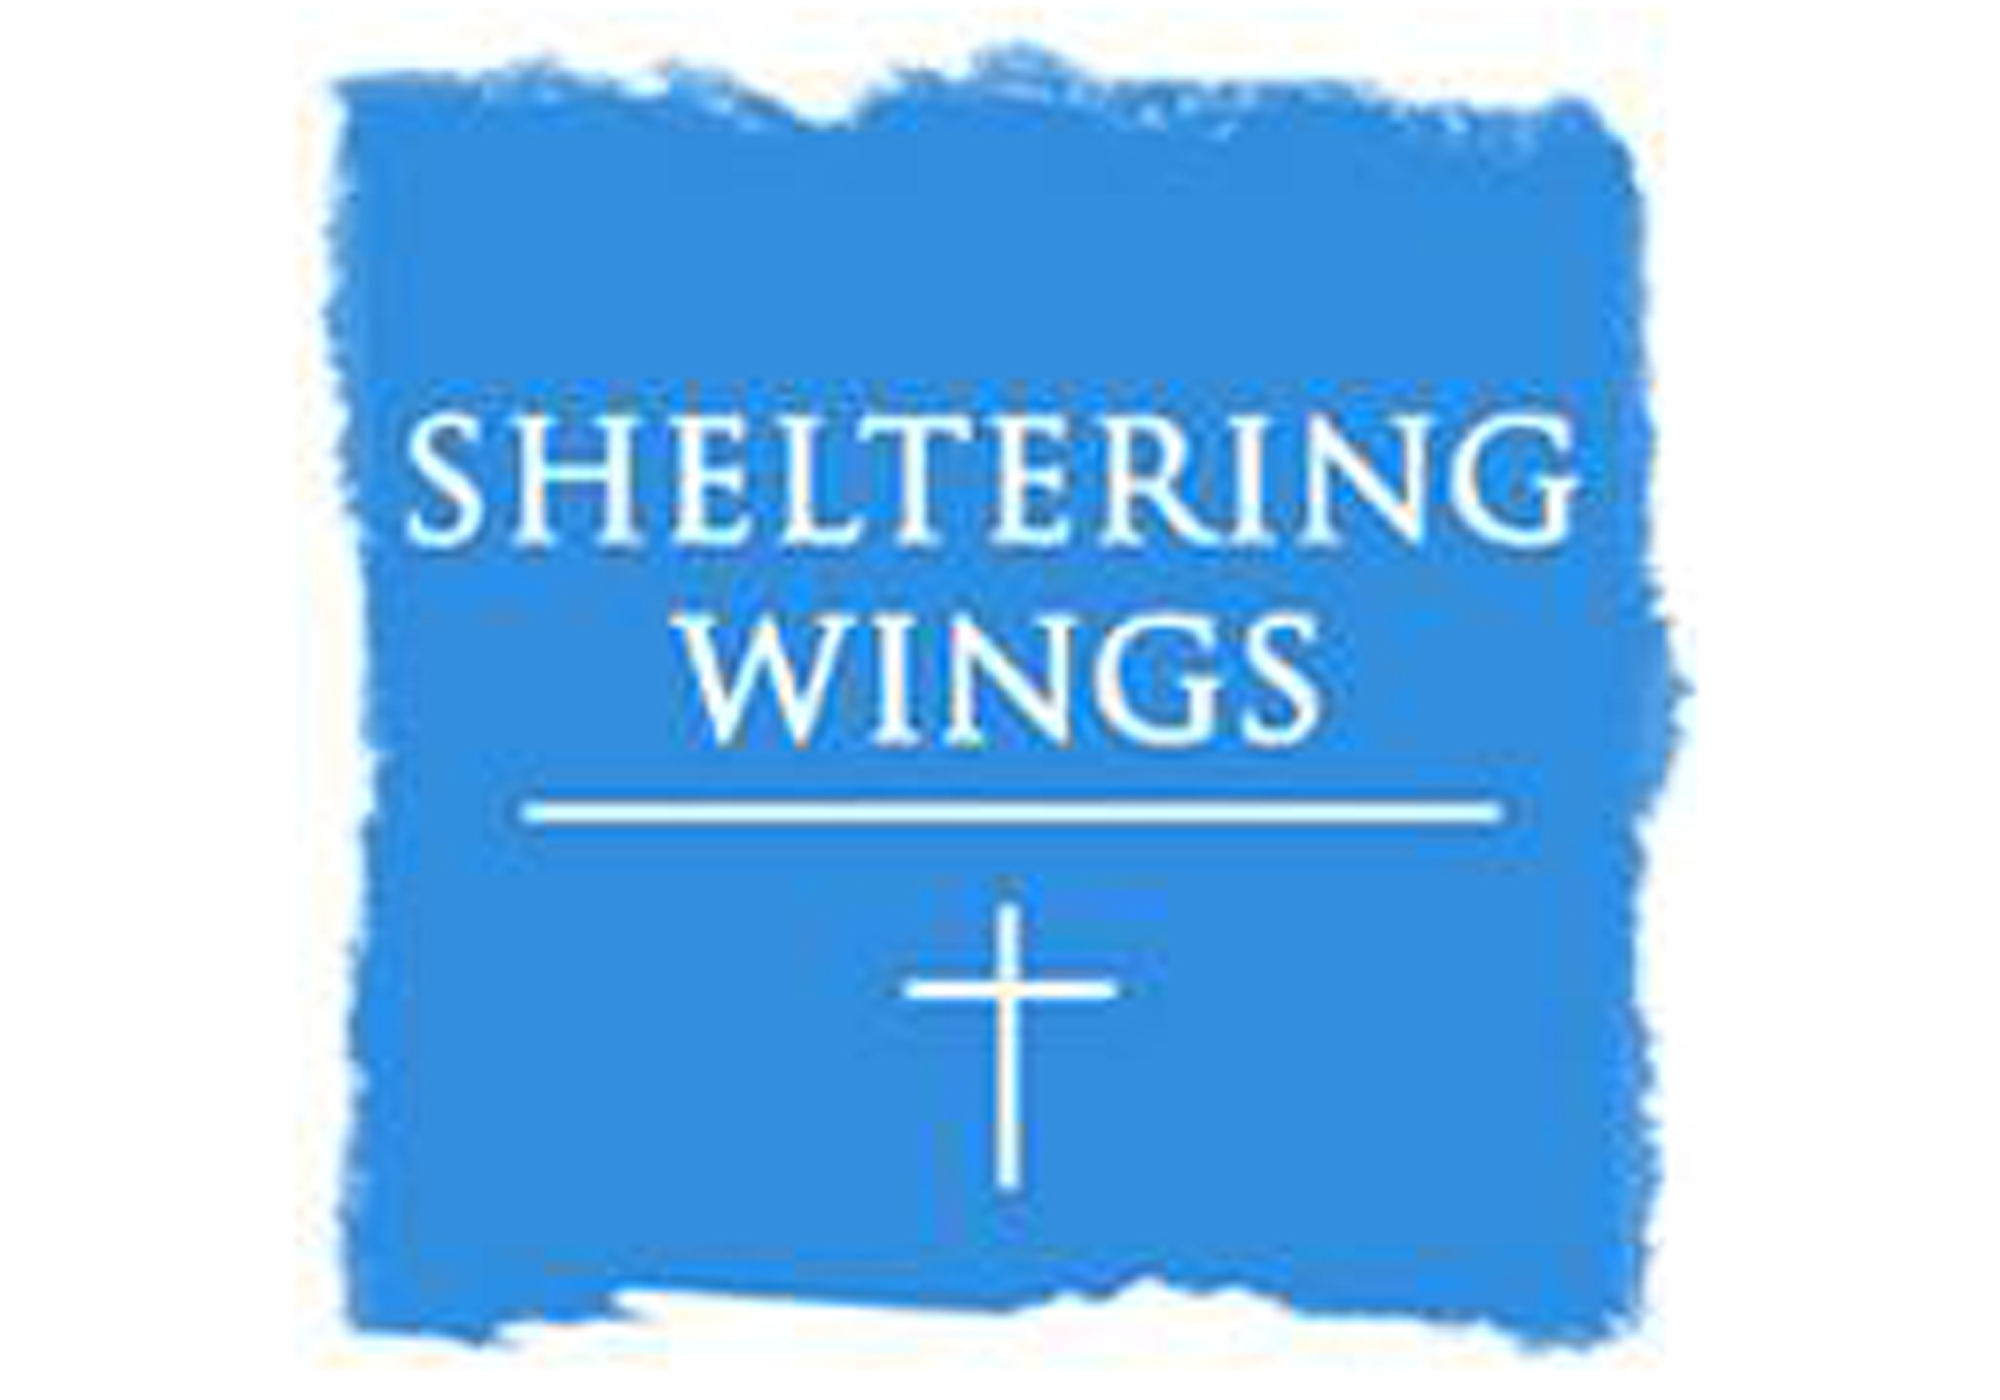 Sheltering Wings Receives HCCF Grant for Professional Development